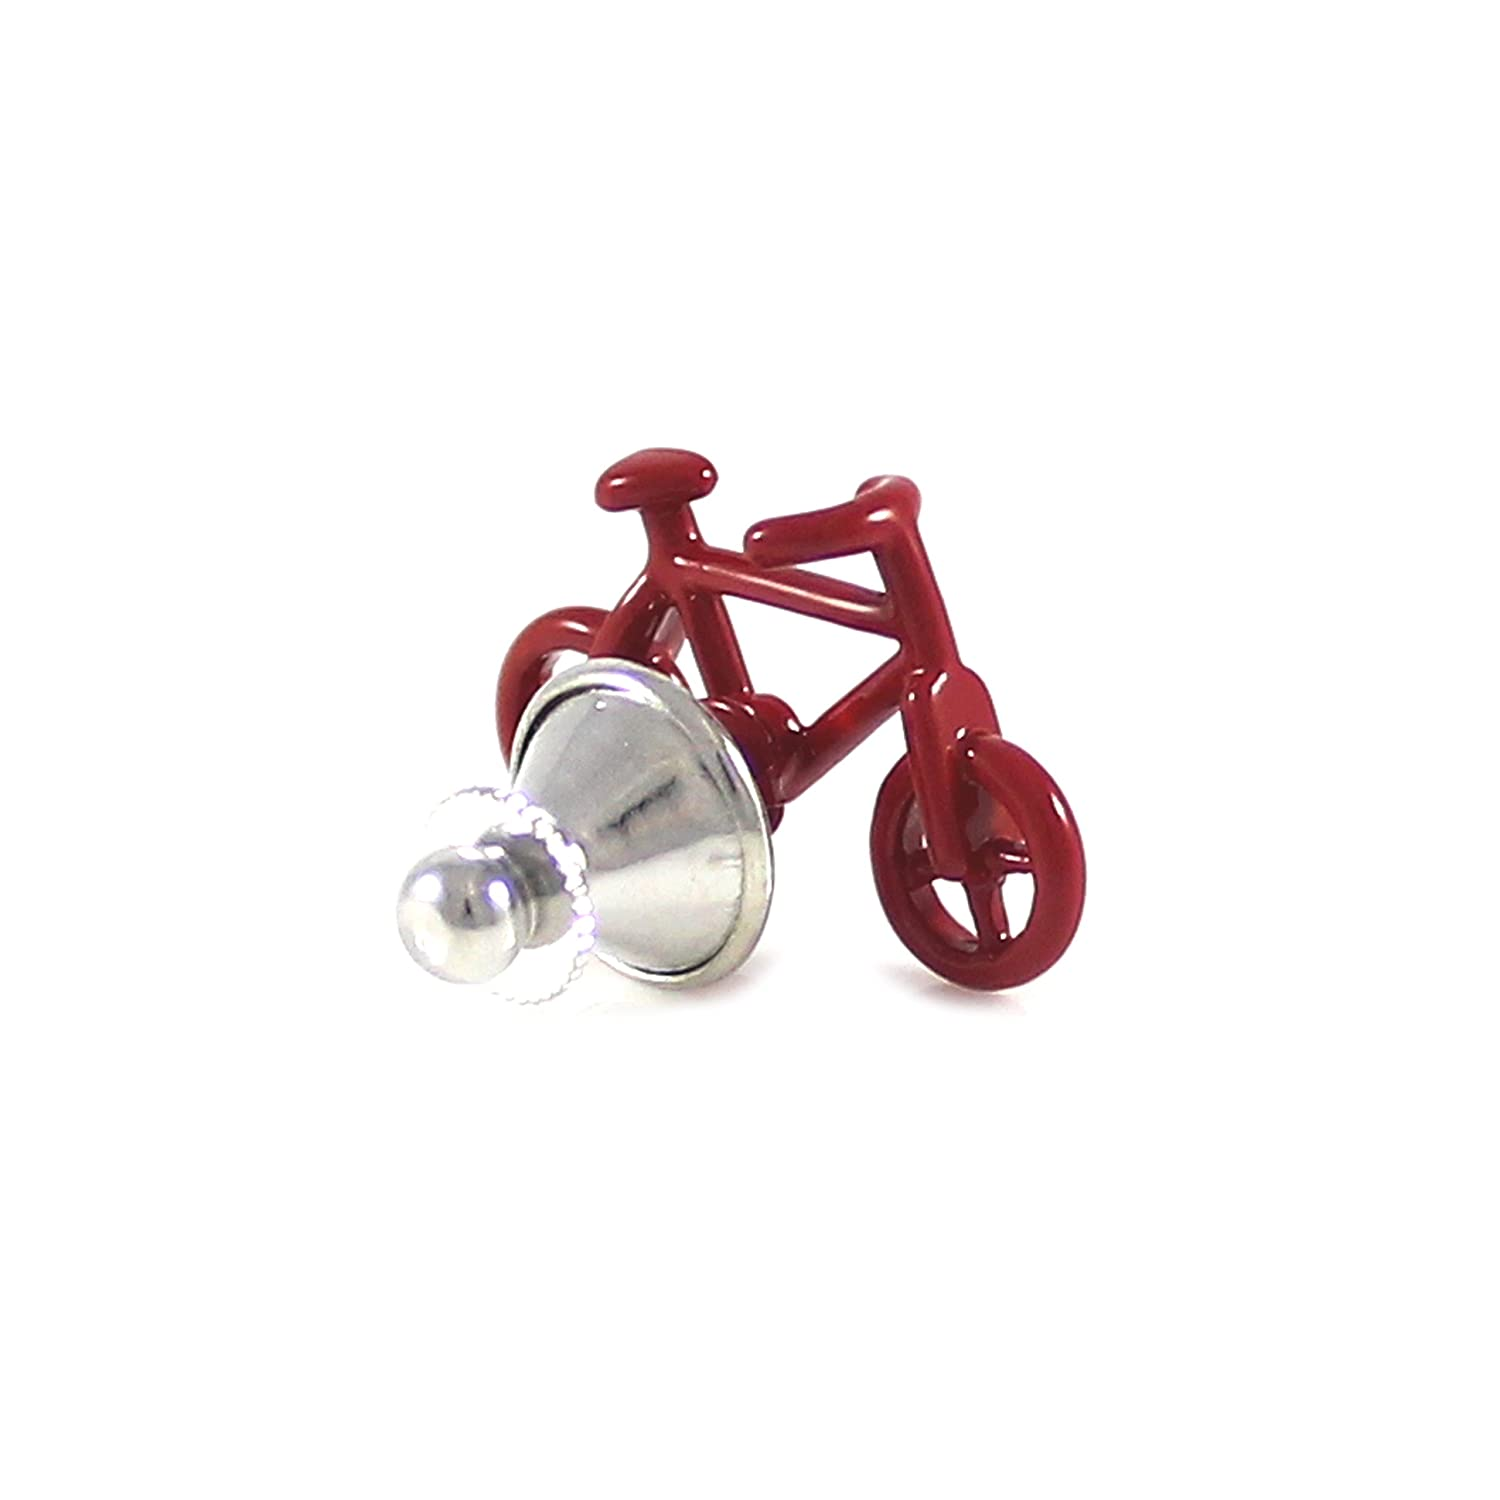 MENDEPOT Novelty Red Bike Lapel Pin Red Color Bicycle Suit Pin